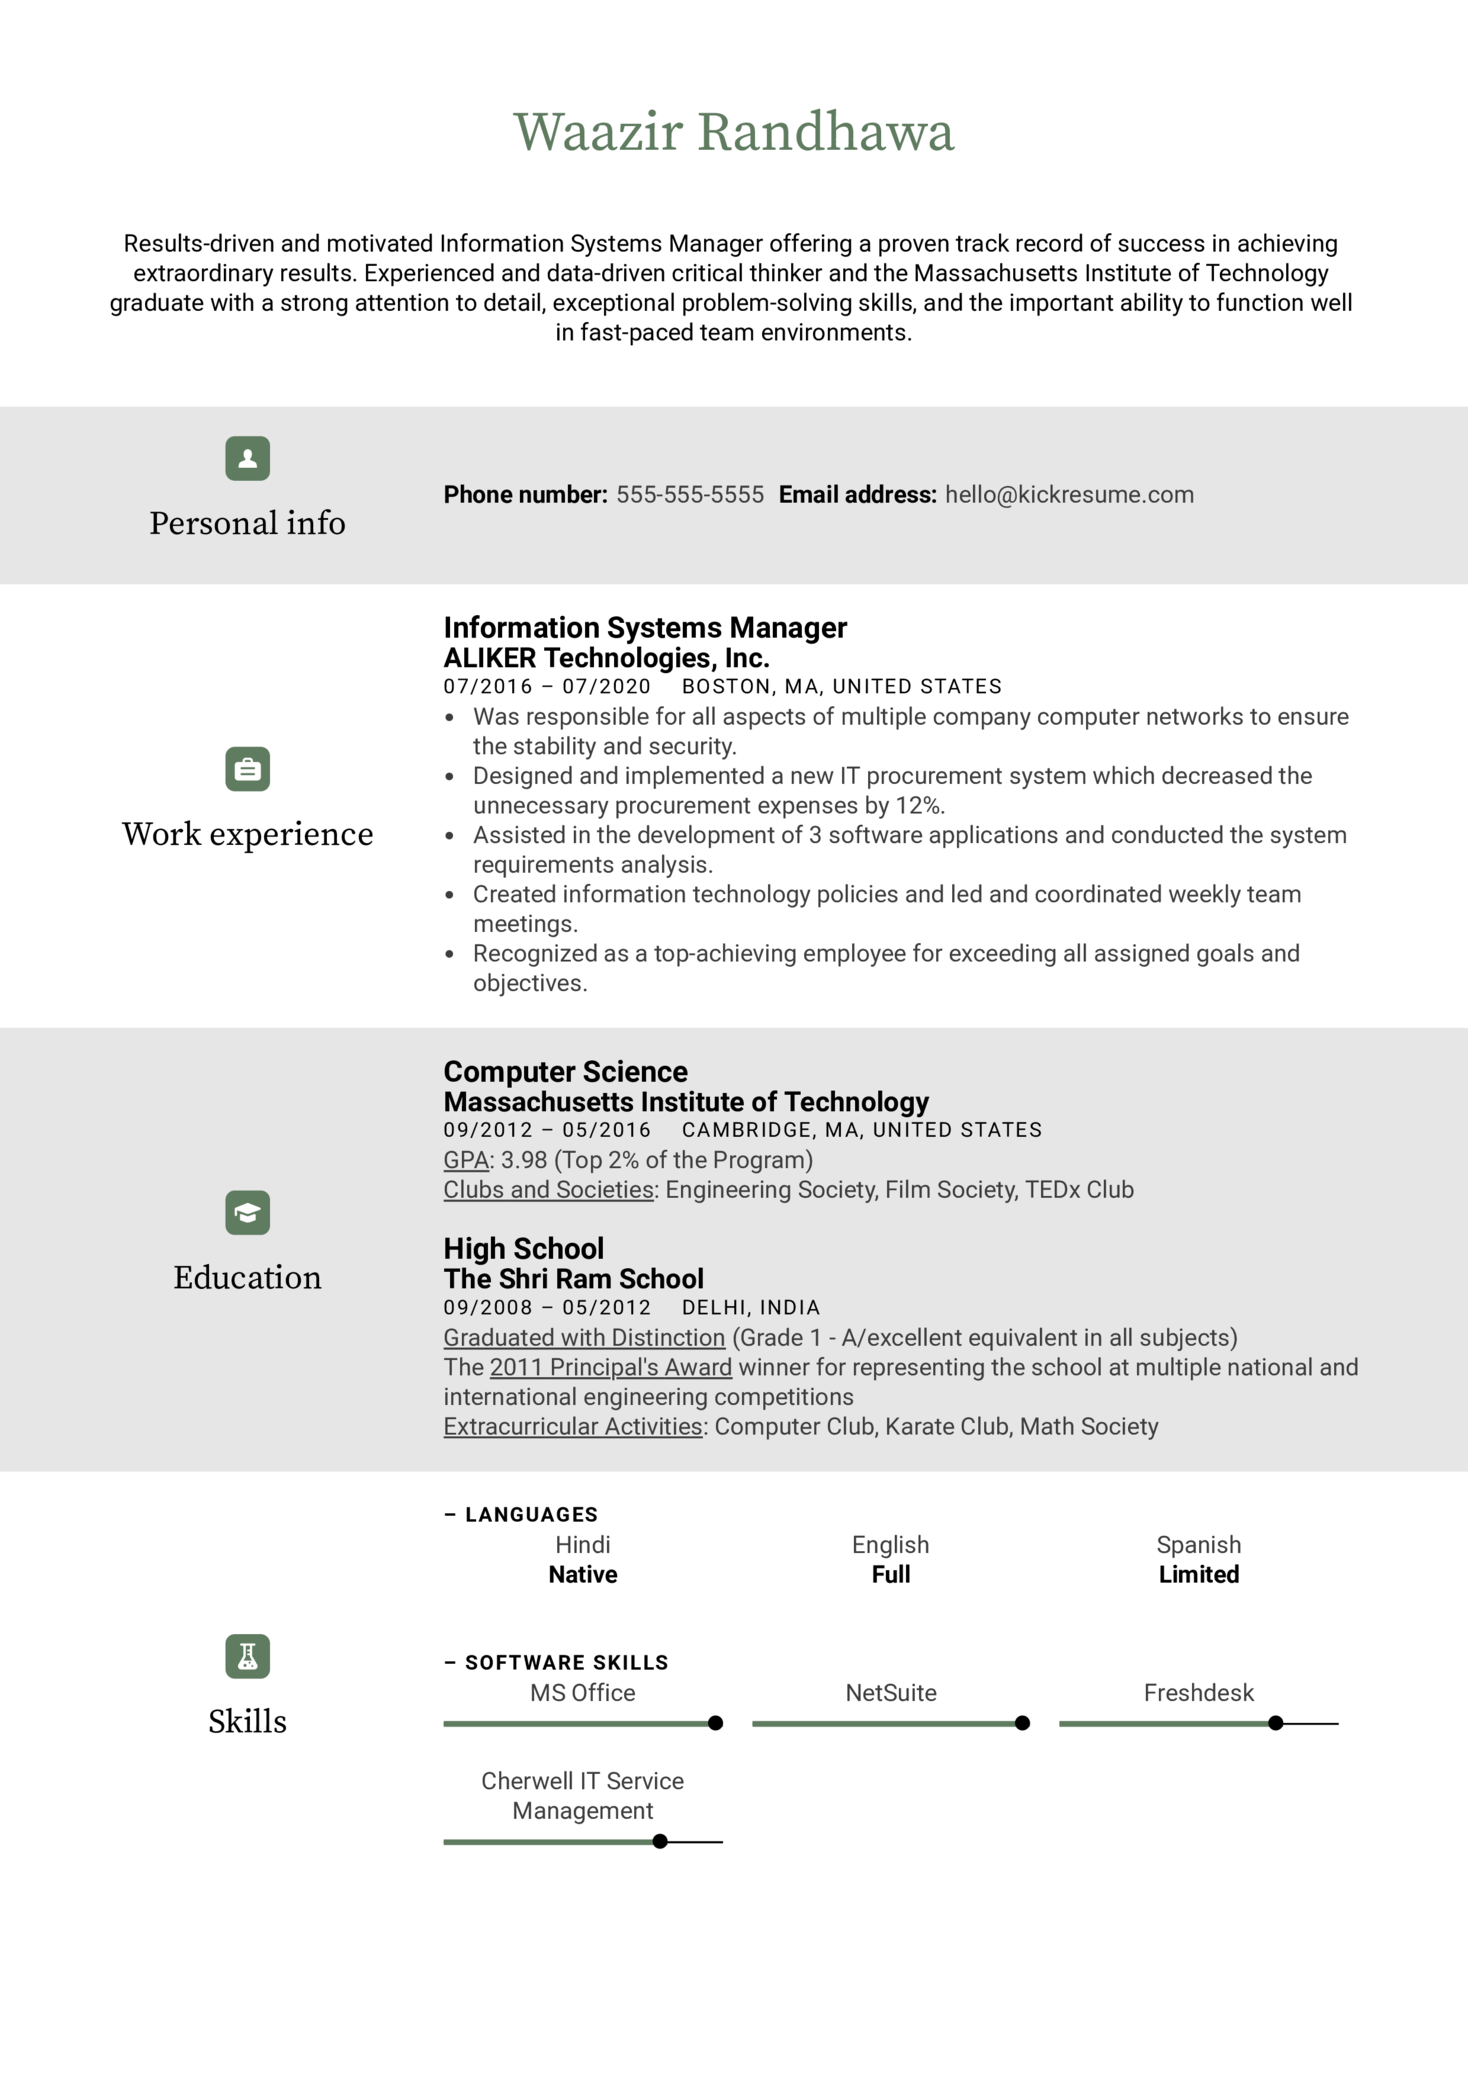 Information Systems Manager Resume Example (Part 1)